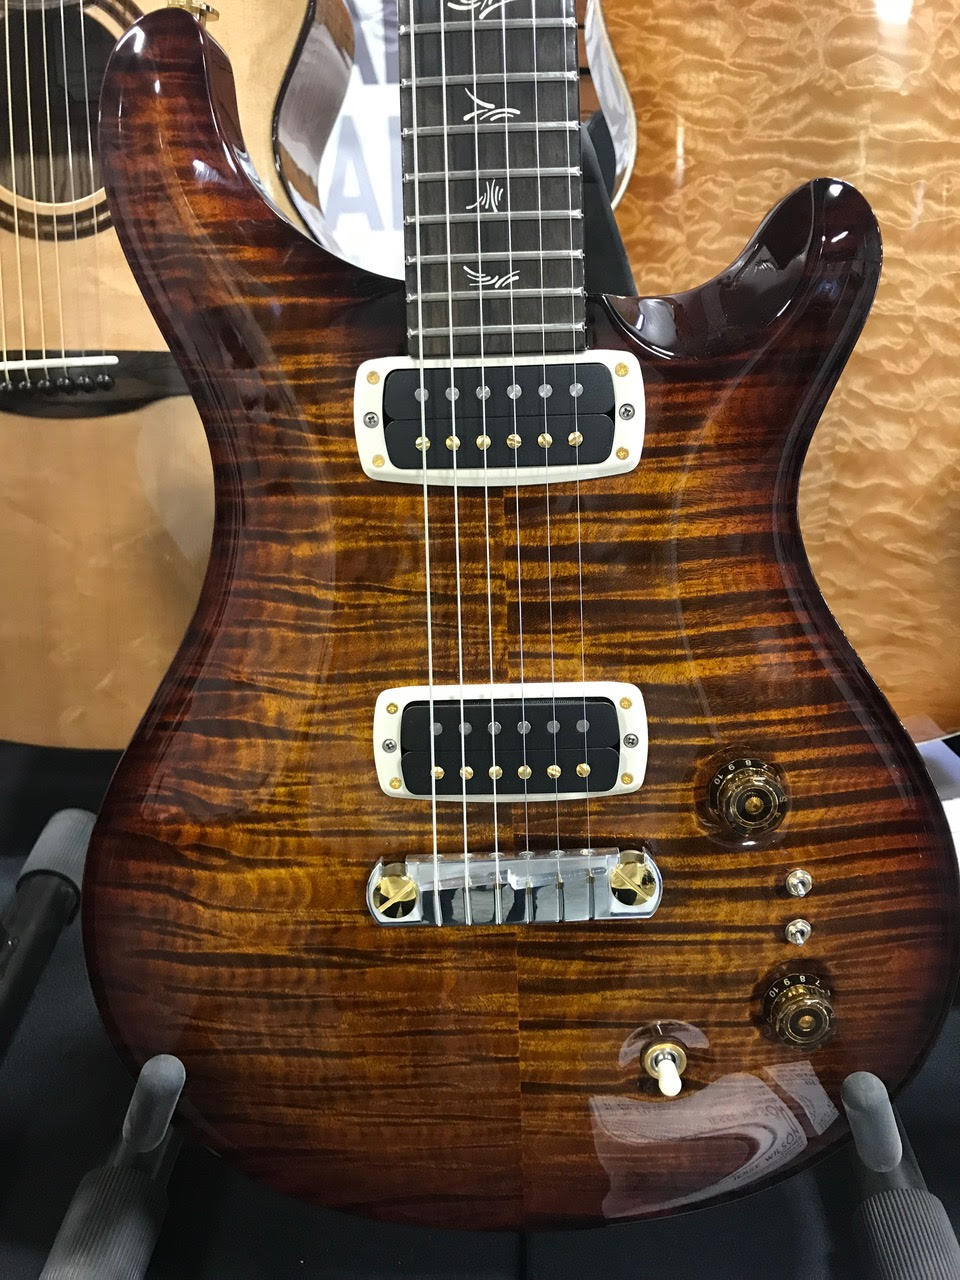 2018 Prs Experience Pauls Guitar Limited Edition 1 Of 100 Ish Guitars